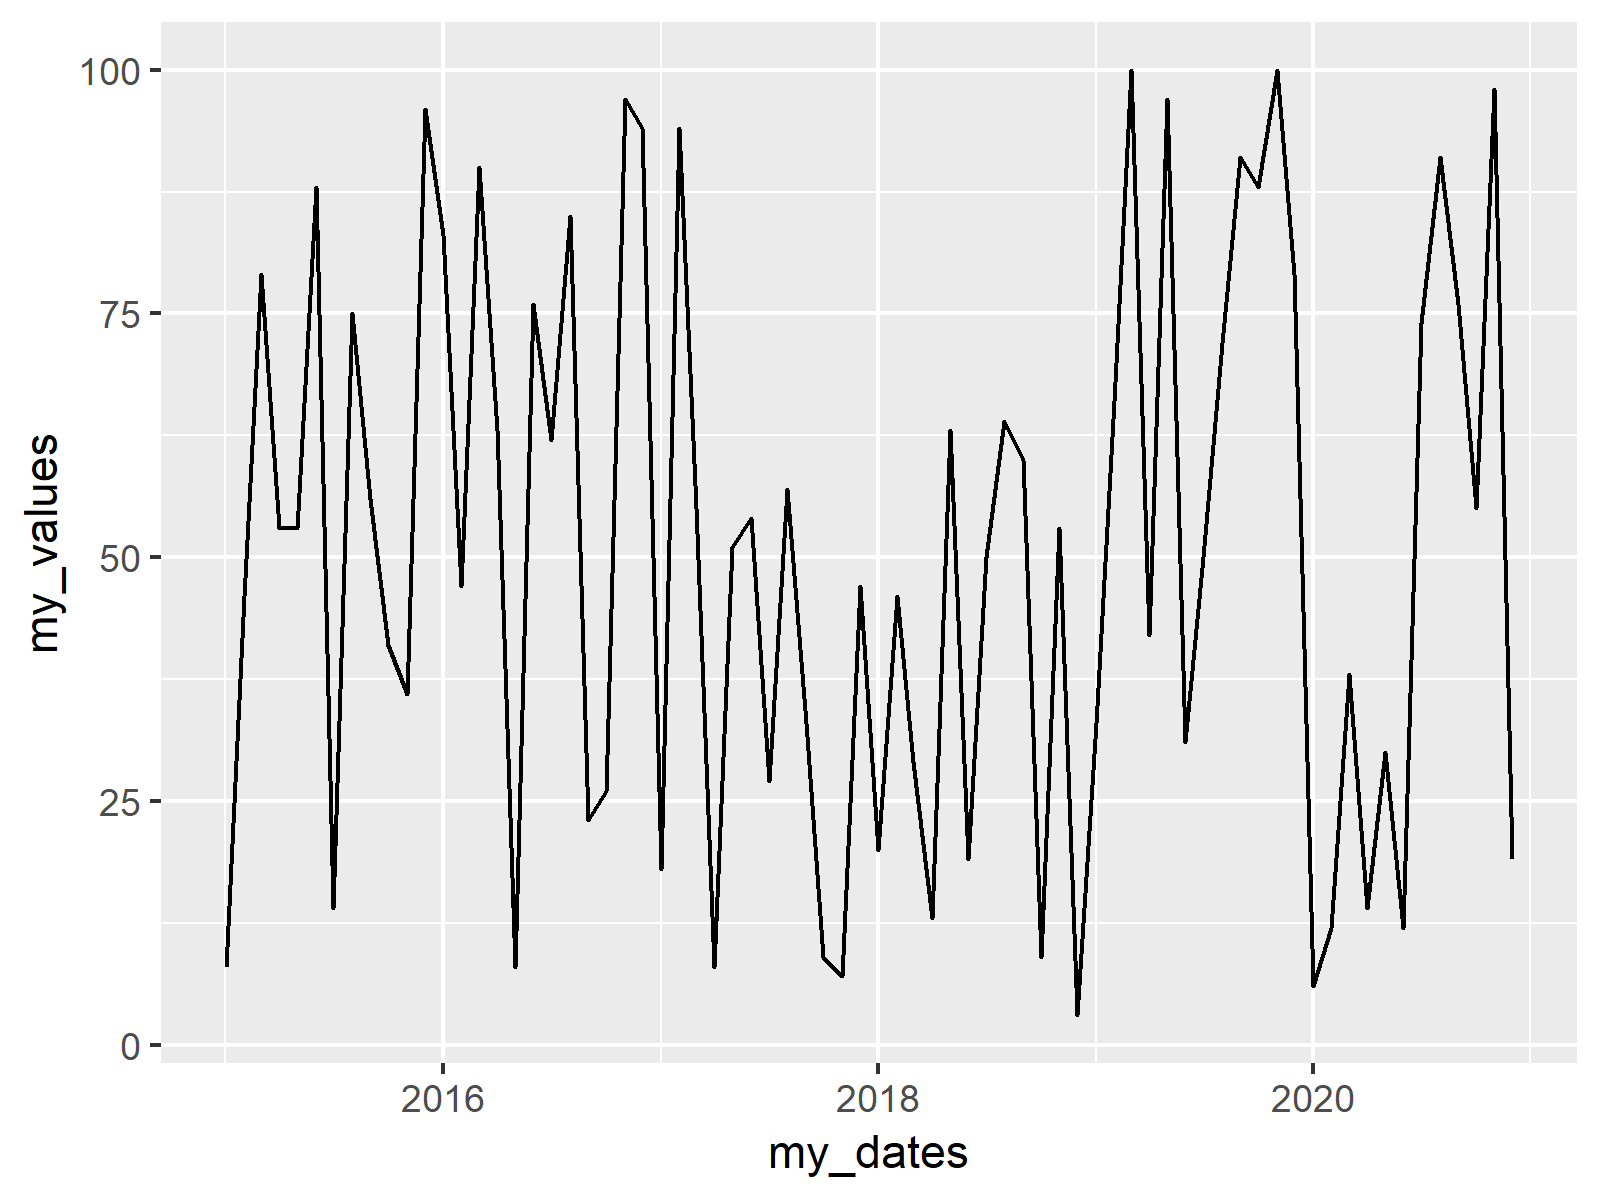 ggplot2 line plot in r